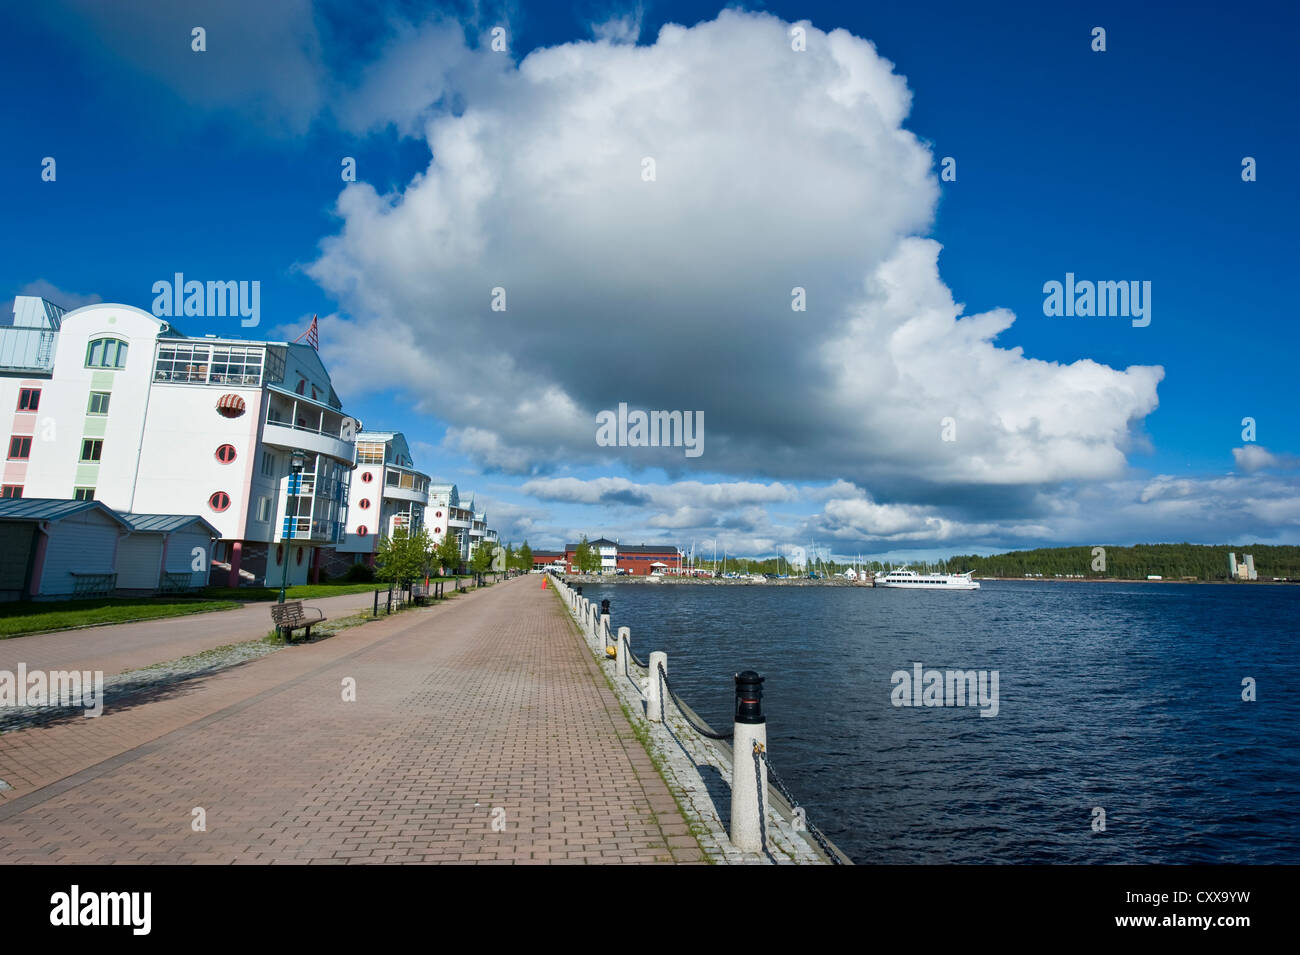 Modern houses in Luleå by the Gulf of Bothnia in Luleå, Norrbotten County, Sweden. - Stock Image